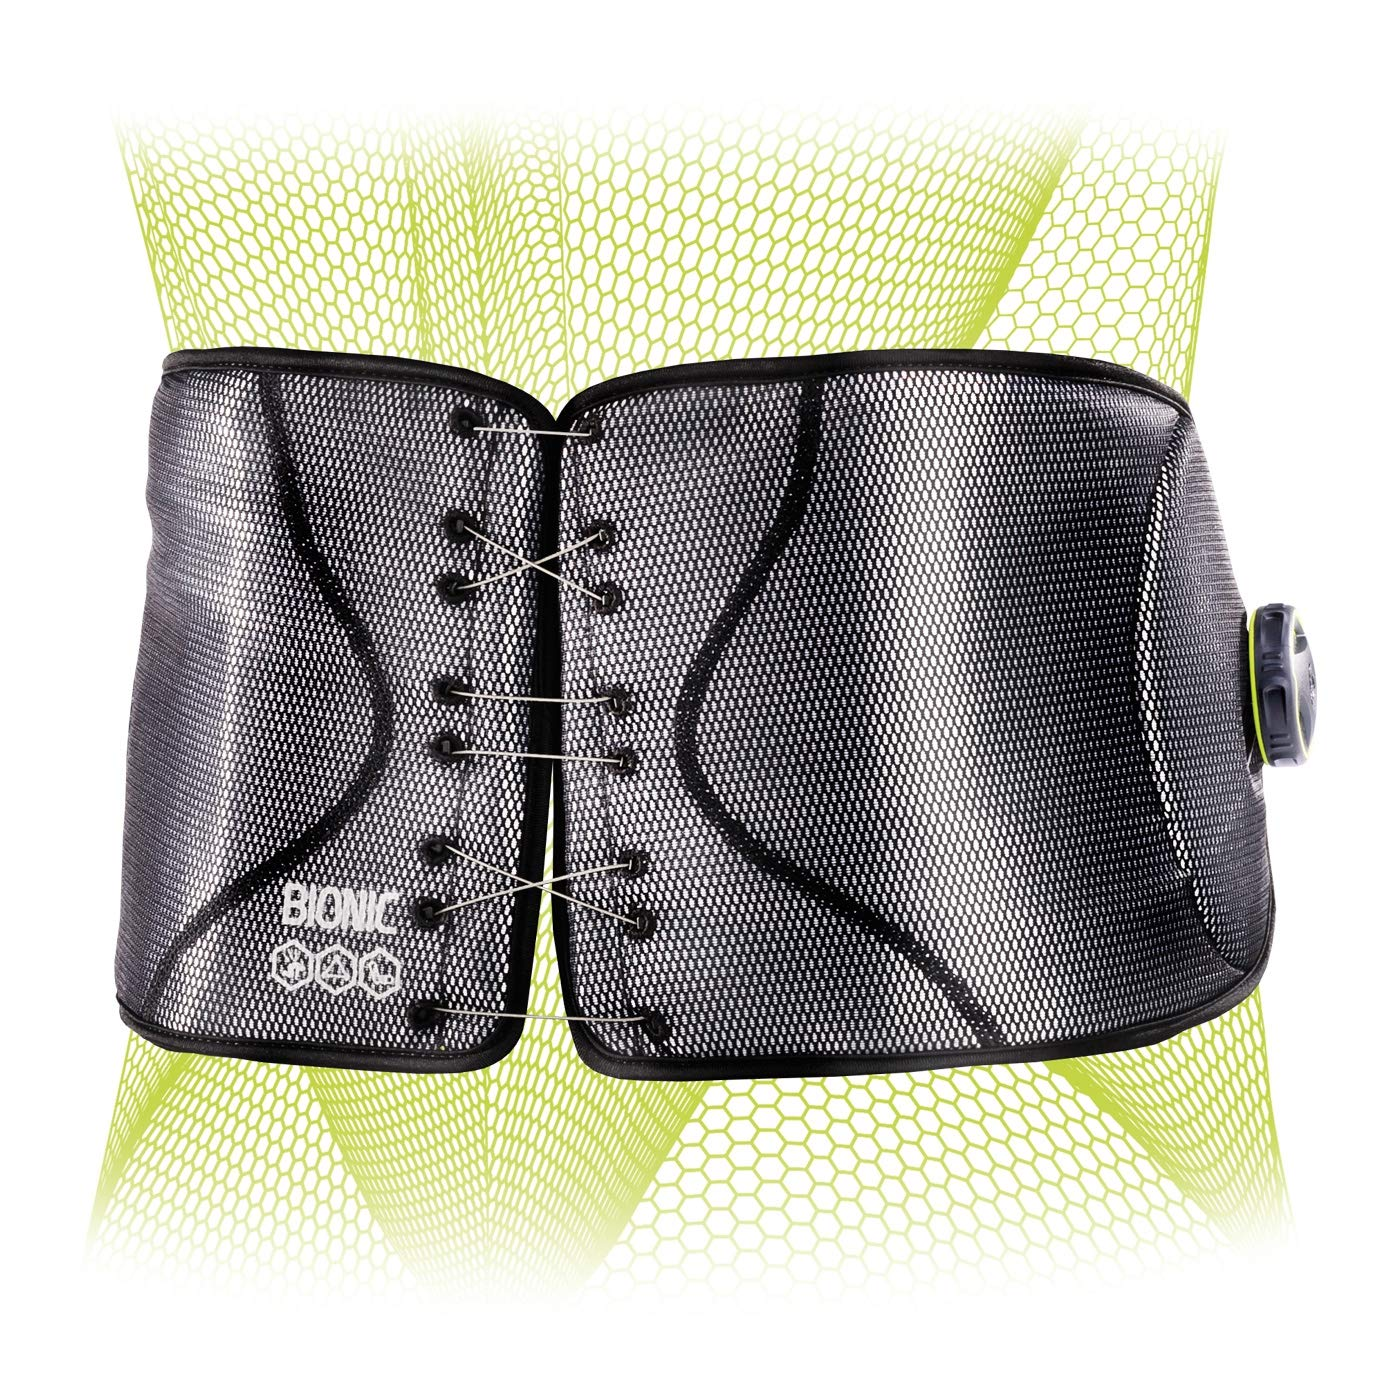 DonJoy® Performance BionicTM Reel-Adjust Boa® Fit System Back Brace - Low-Profile, Adjustable Low-Back Support with Removable Rigid Panels for Low Back Pain, Strains and Lumbar Support